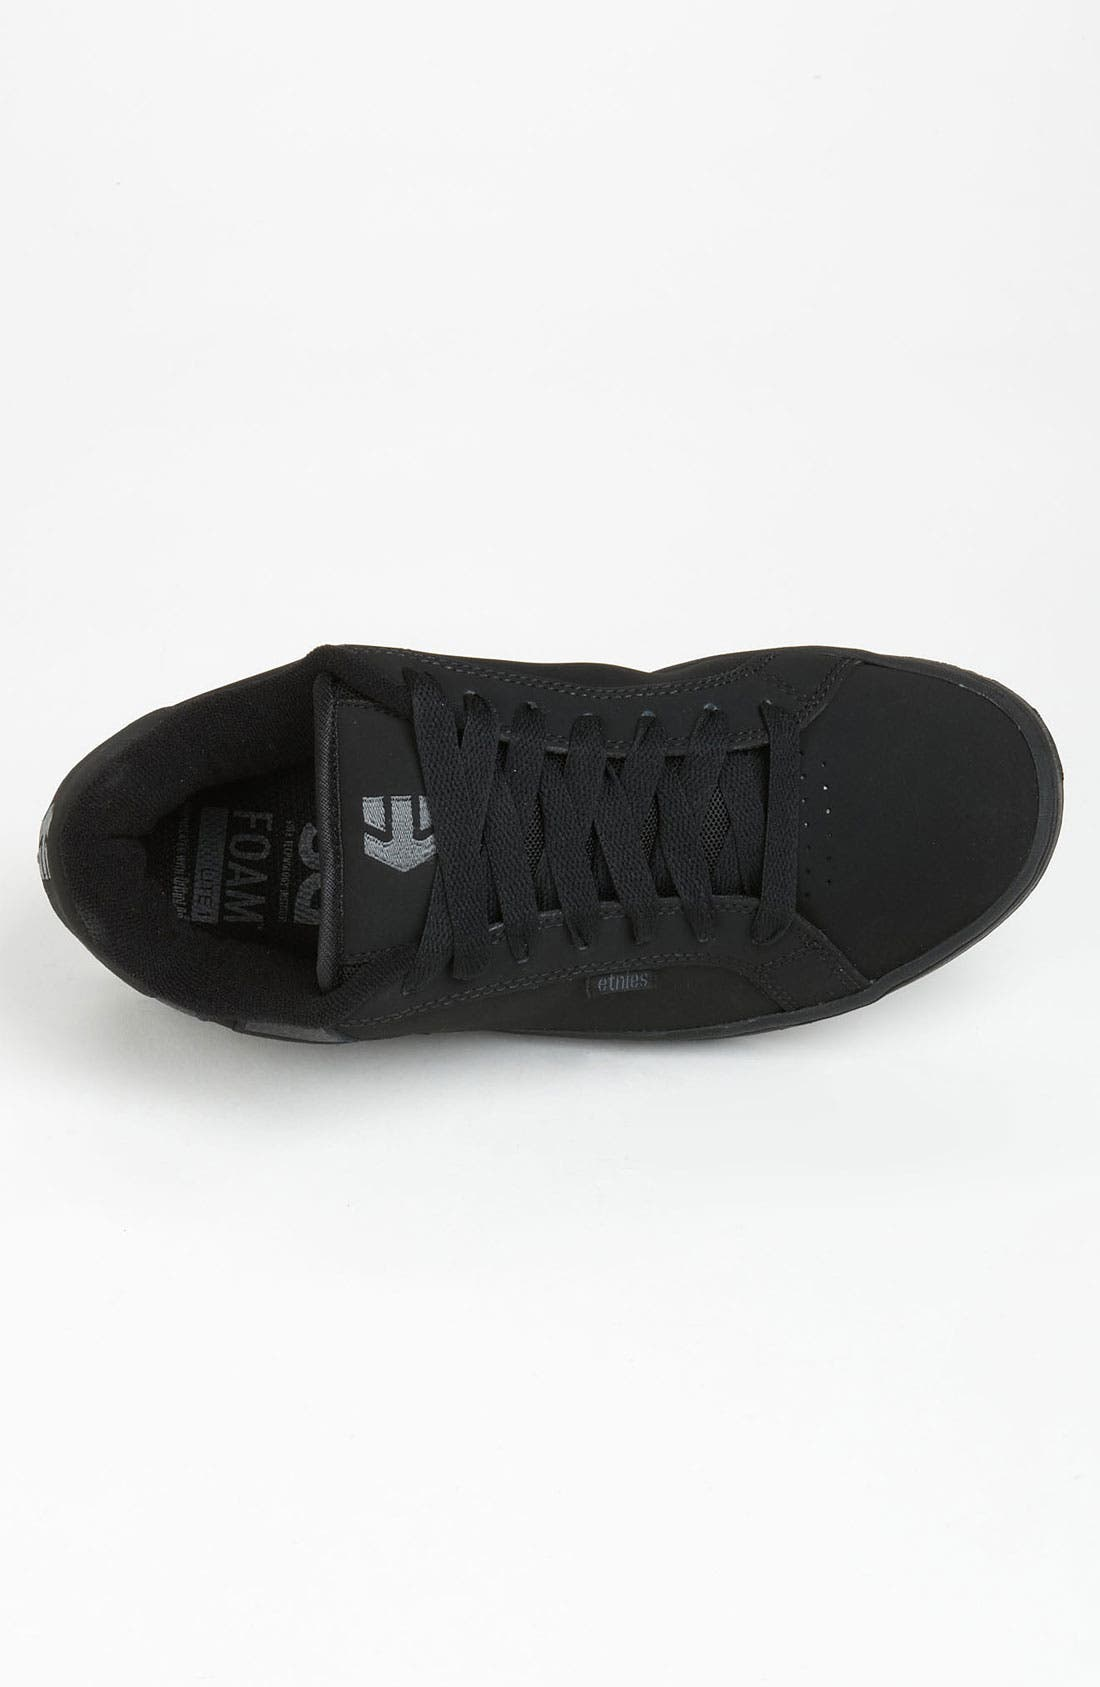 Alternate Image 3  - Etnies 'Fader' Skate Shoe (Men)